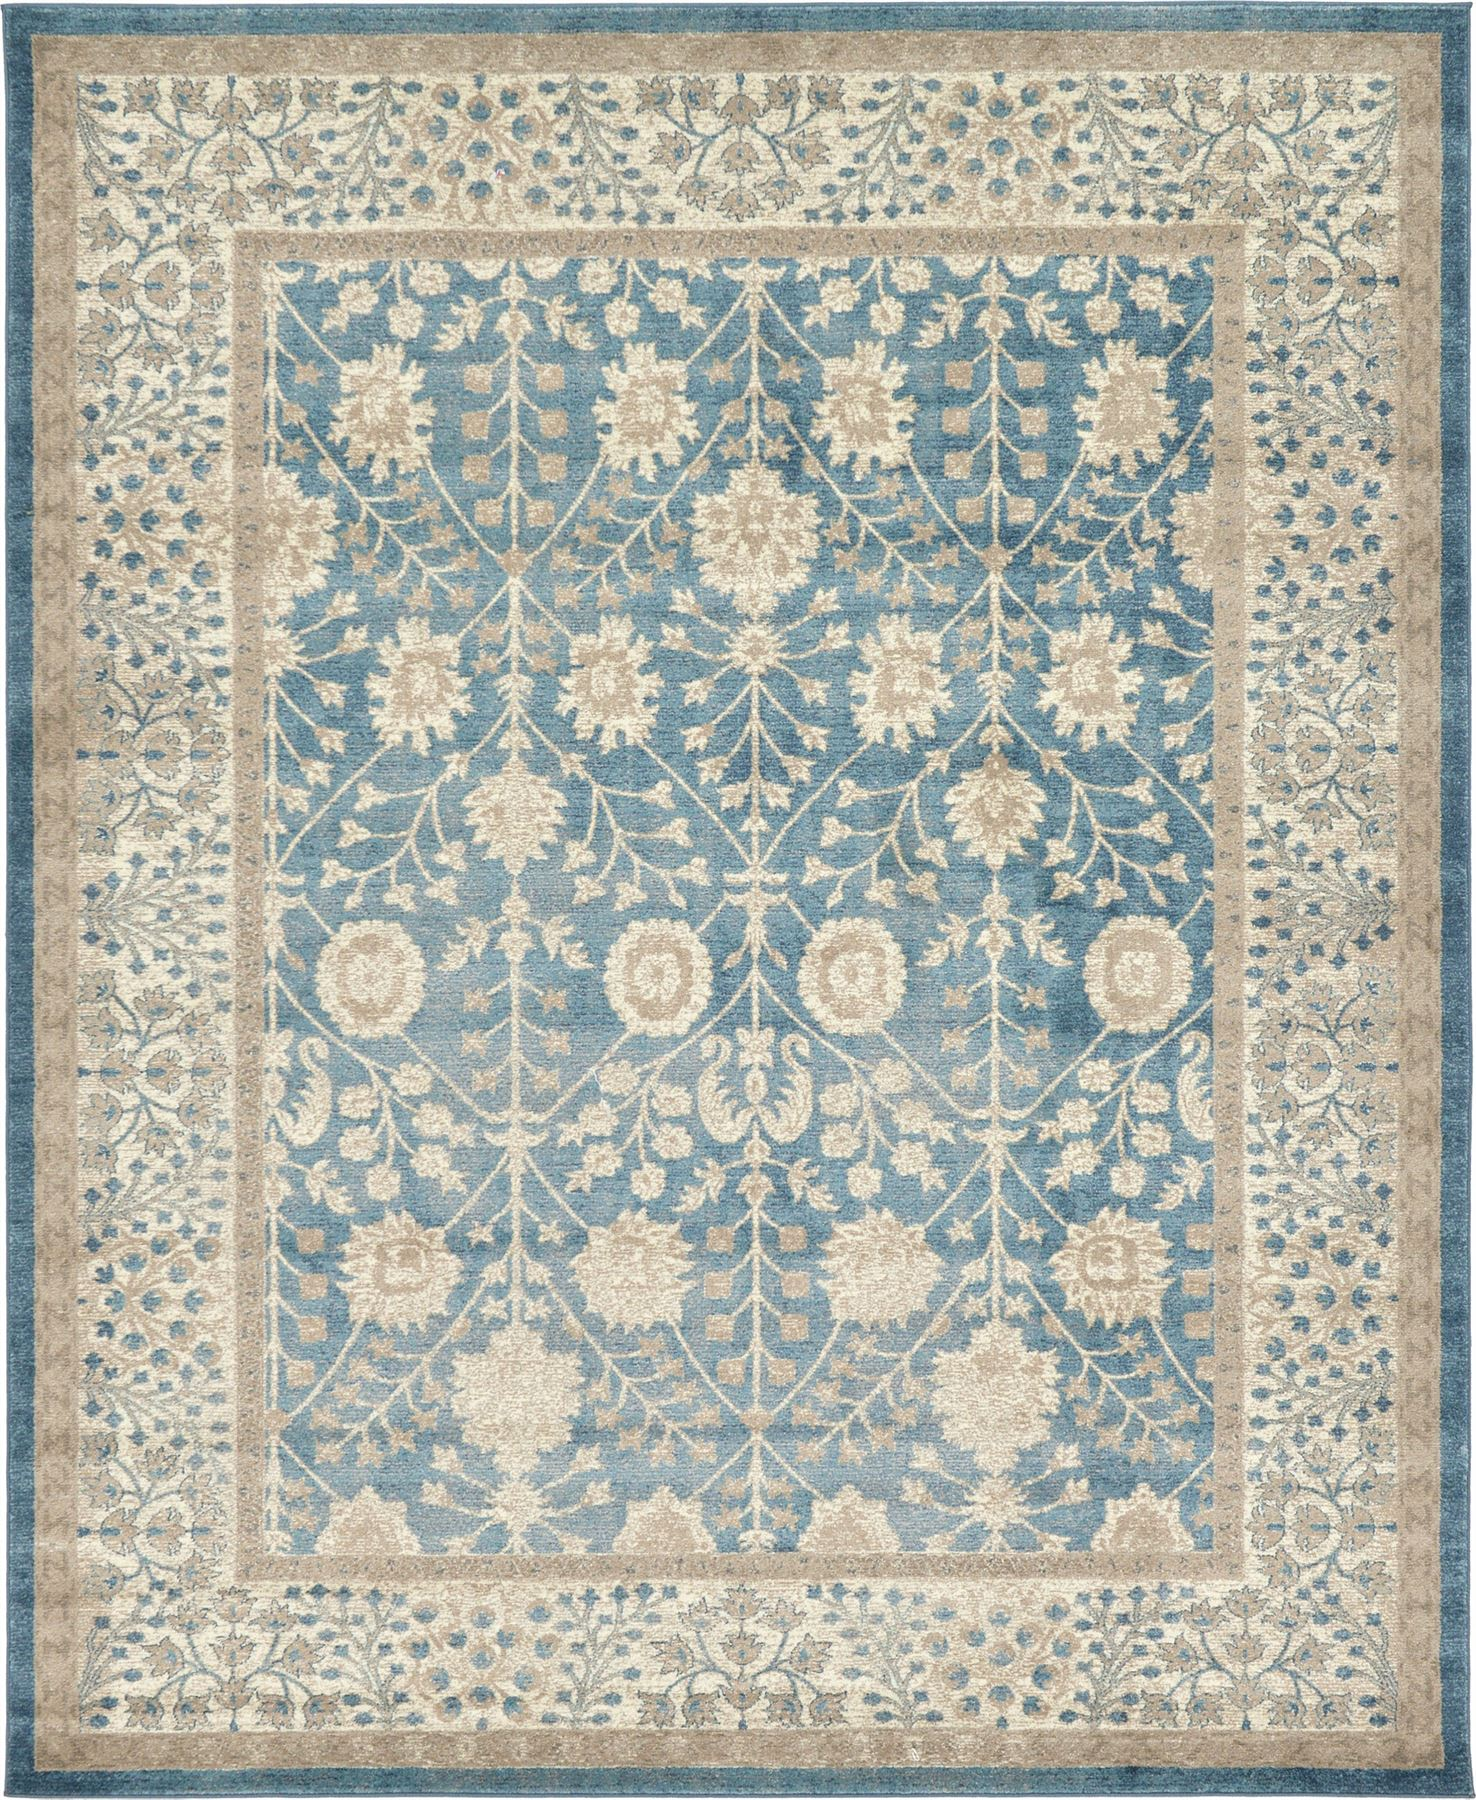 Contemporary rugs new carpets area floor rug modern area for Area rugs contemporary modern